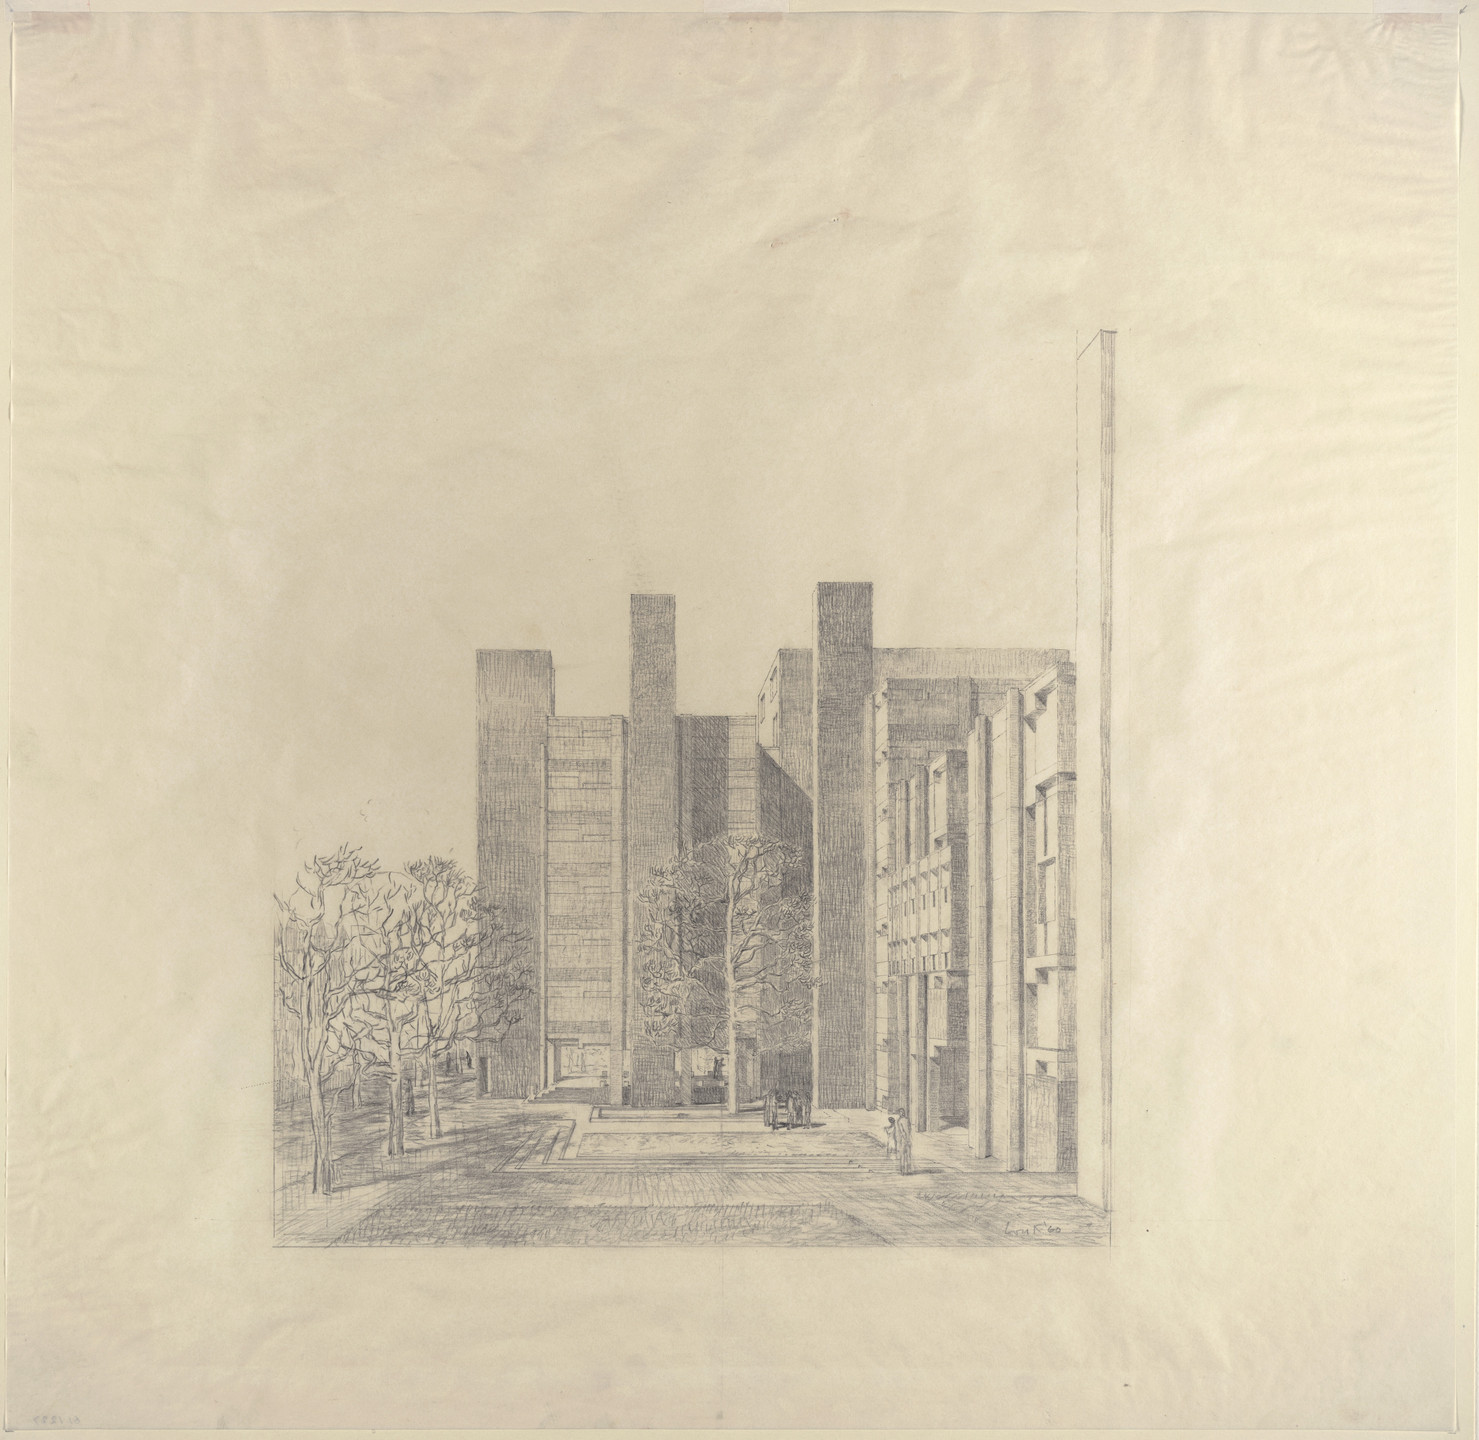 Louis I. Kahn. Alfred Newton Richards Medical Research Building and Biology Building, University of Pennsylvania, Philadelphia, Pennsylvania, Exterior perspective, final version. 1960